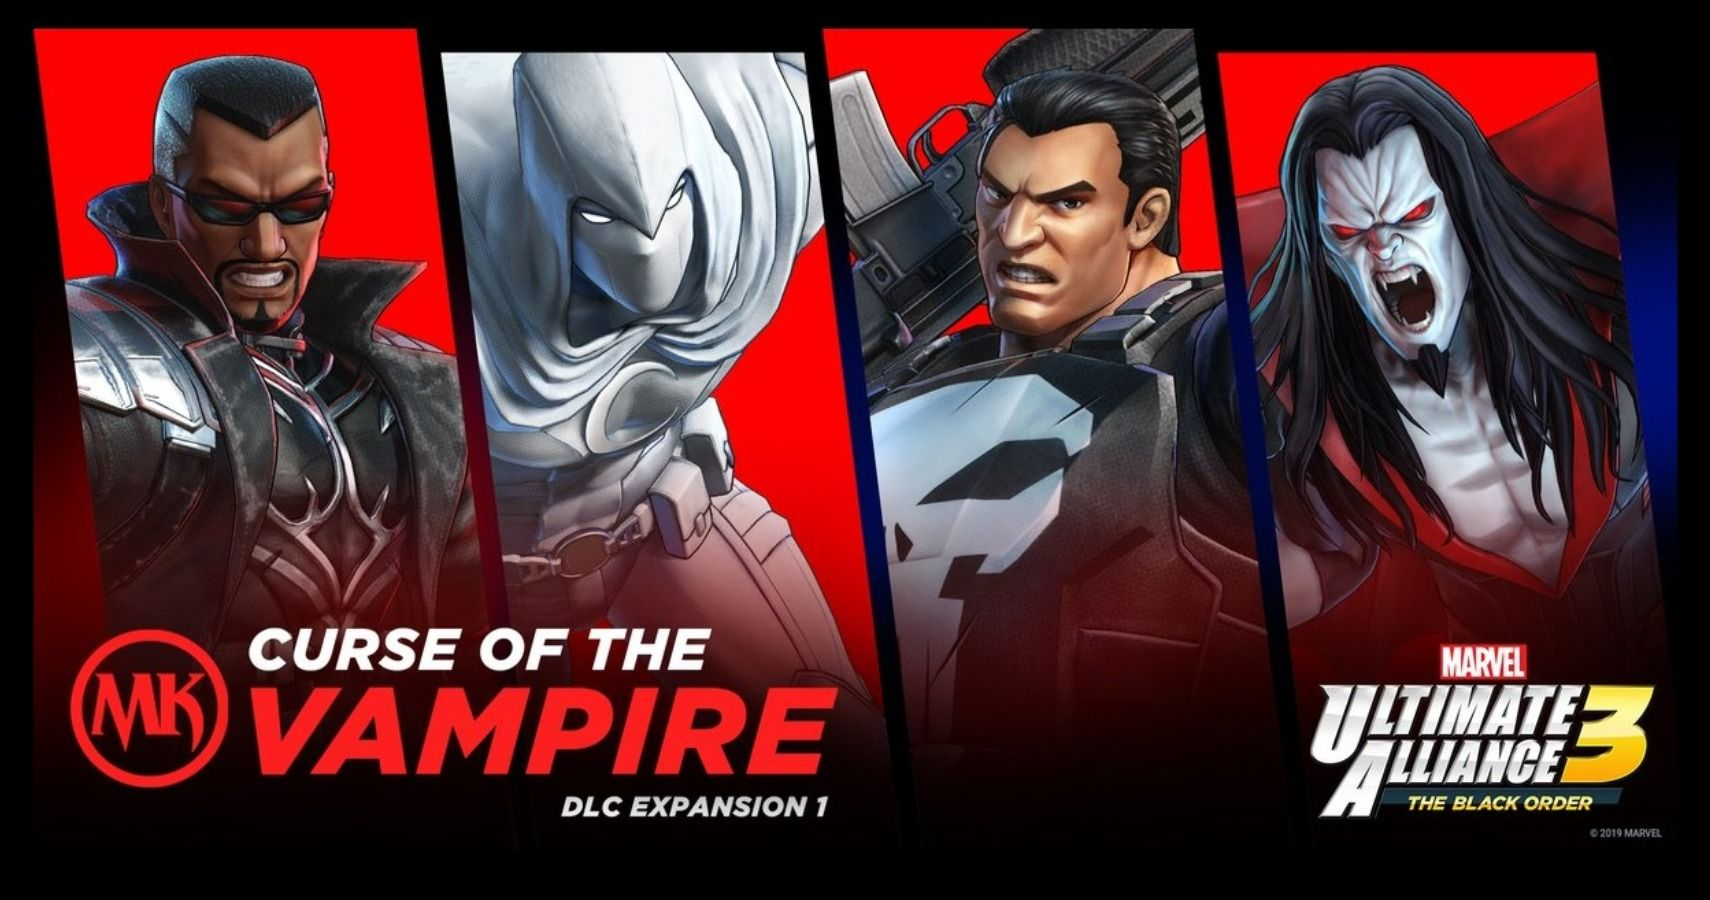 Marvel Ultimate Alliance 3 Leak Confirmed, The Marvel Knights Will Be Part Of DLC